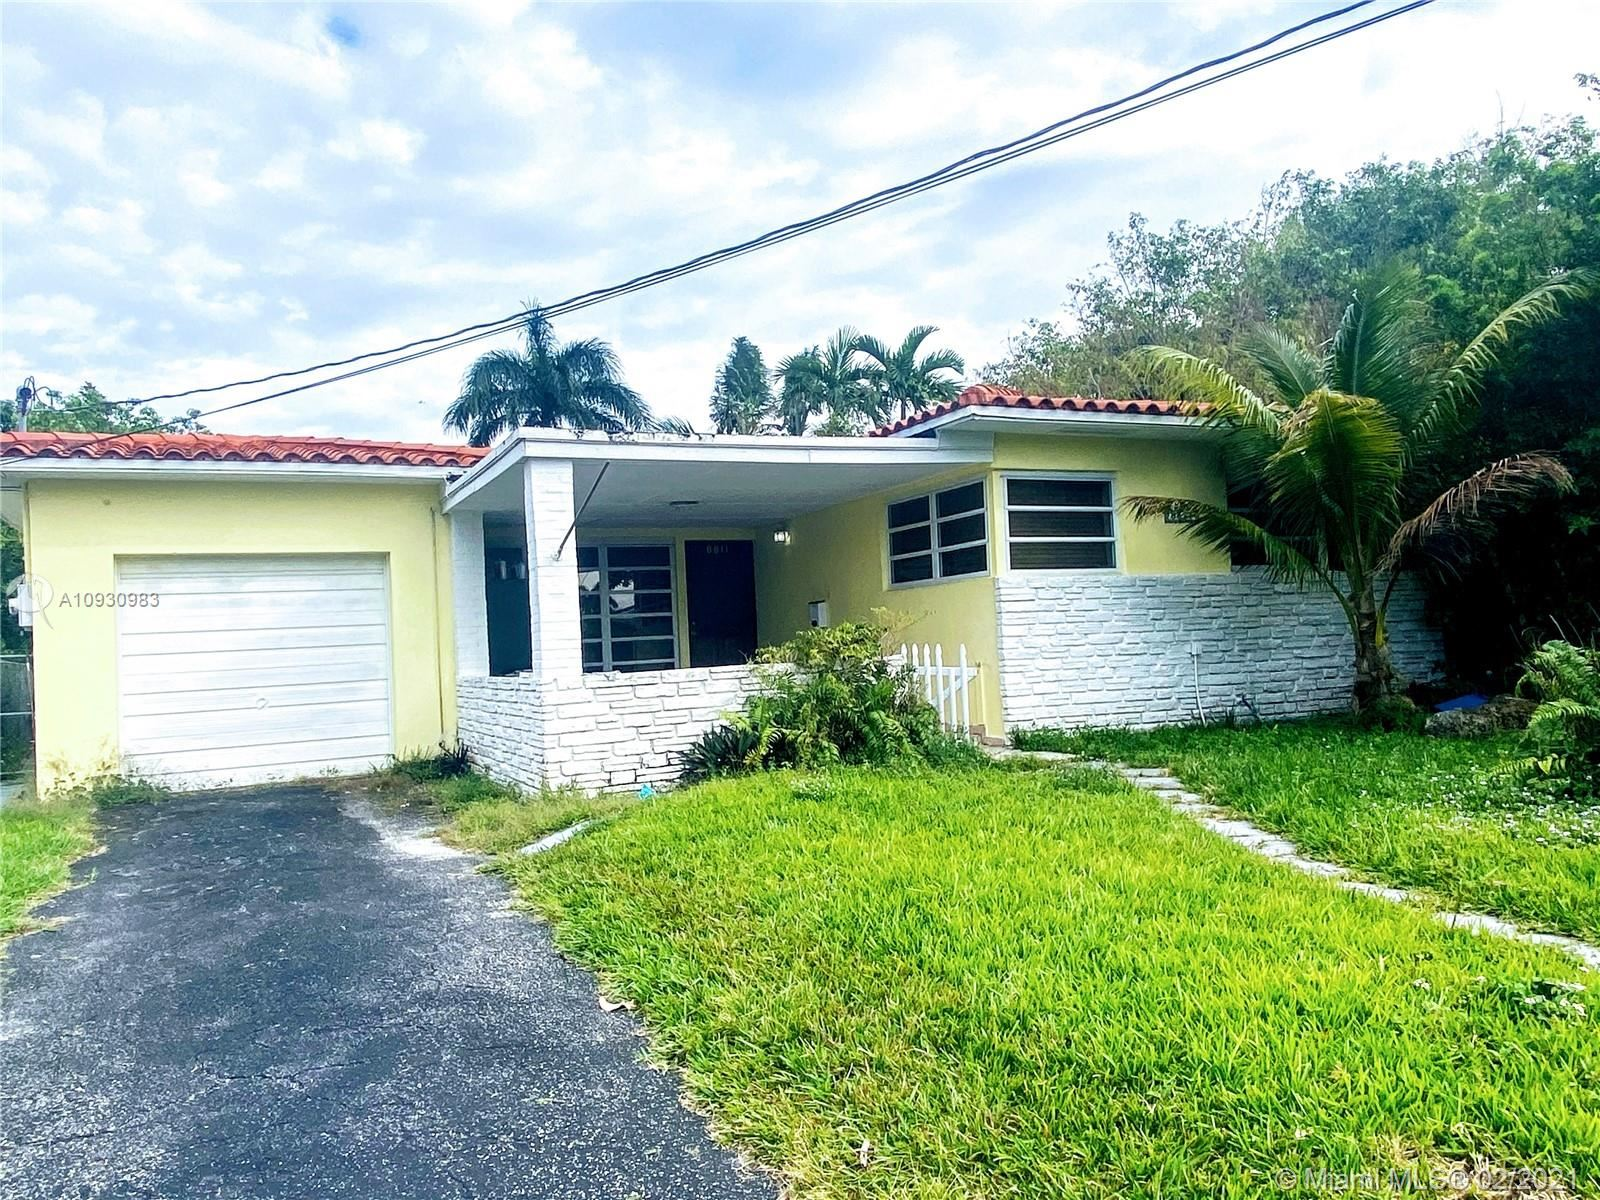 8811 Carlyle Ave, Surfside, FL 33154 - #: A10930983